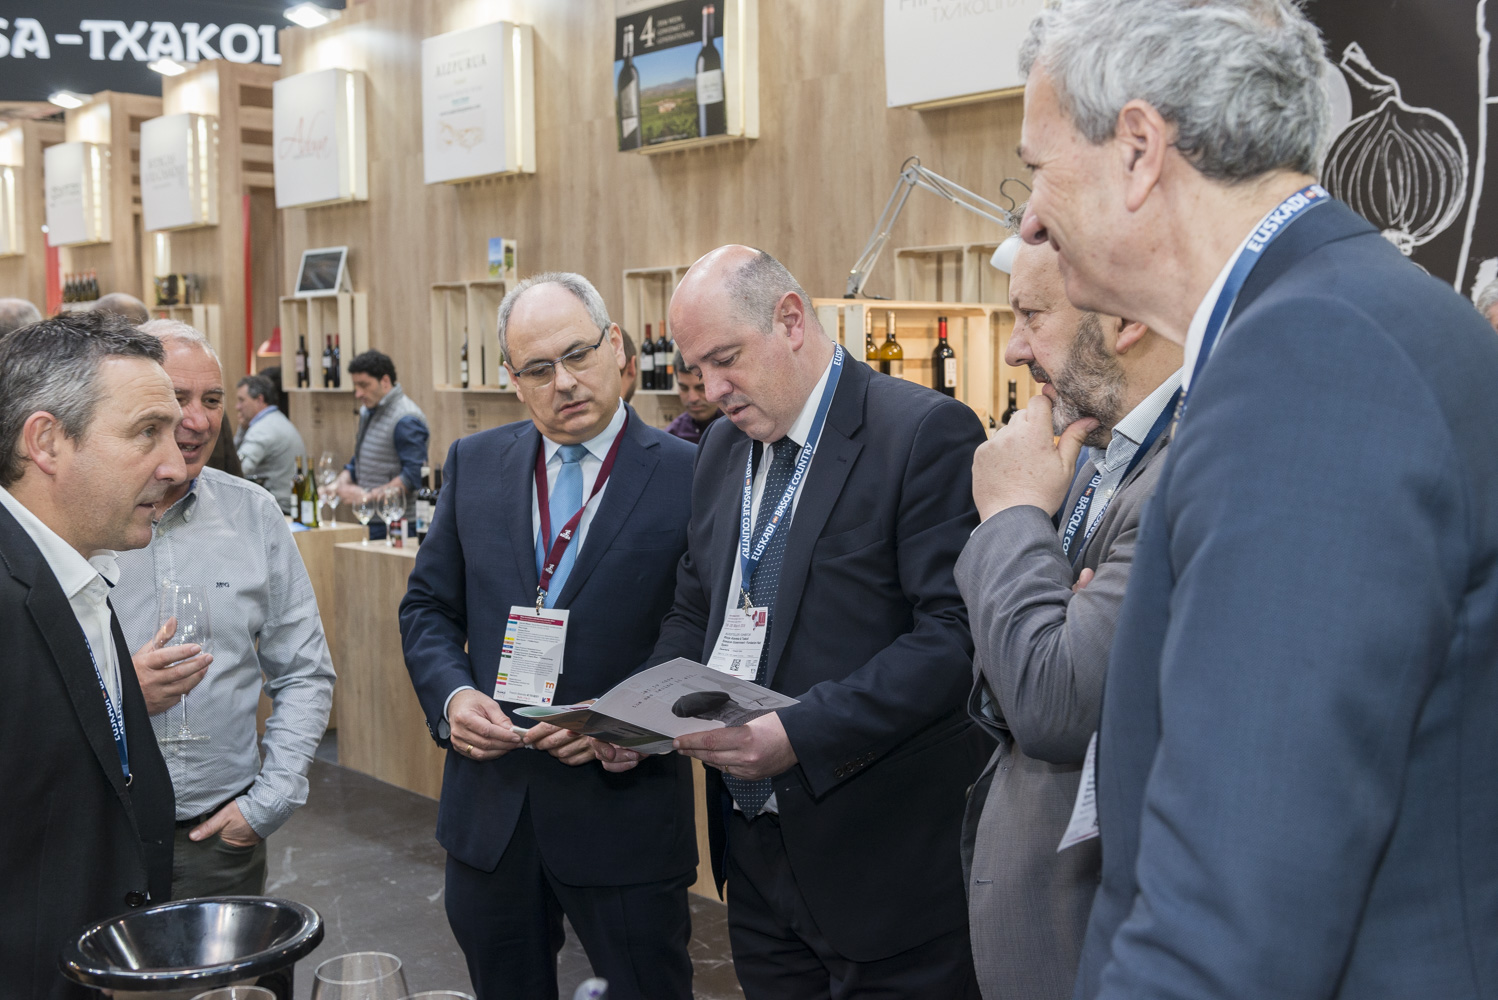 prowein_stand_euskadi_basque_country_09.jpg